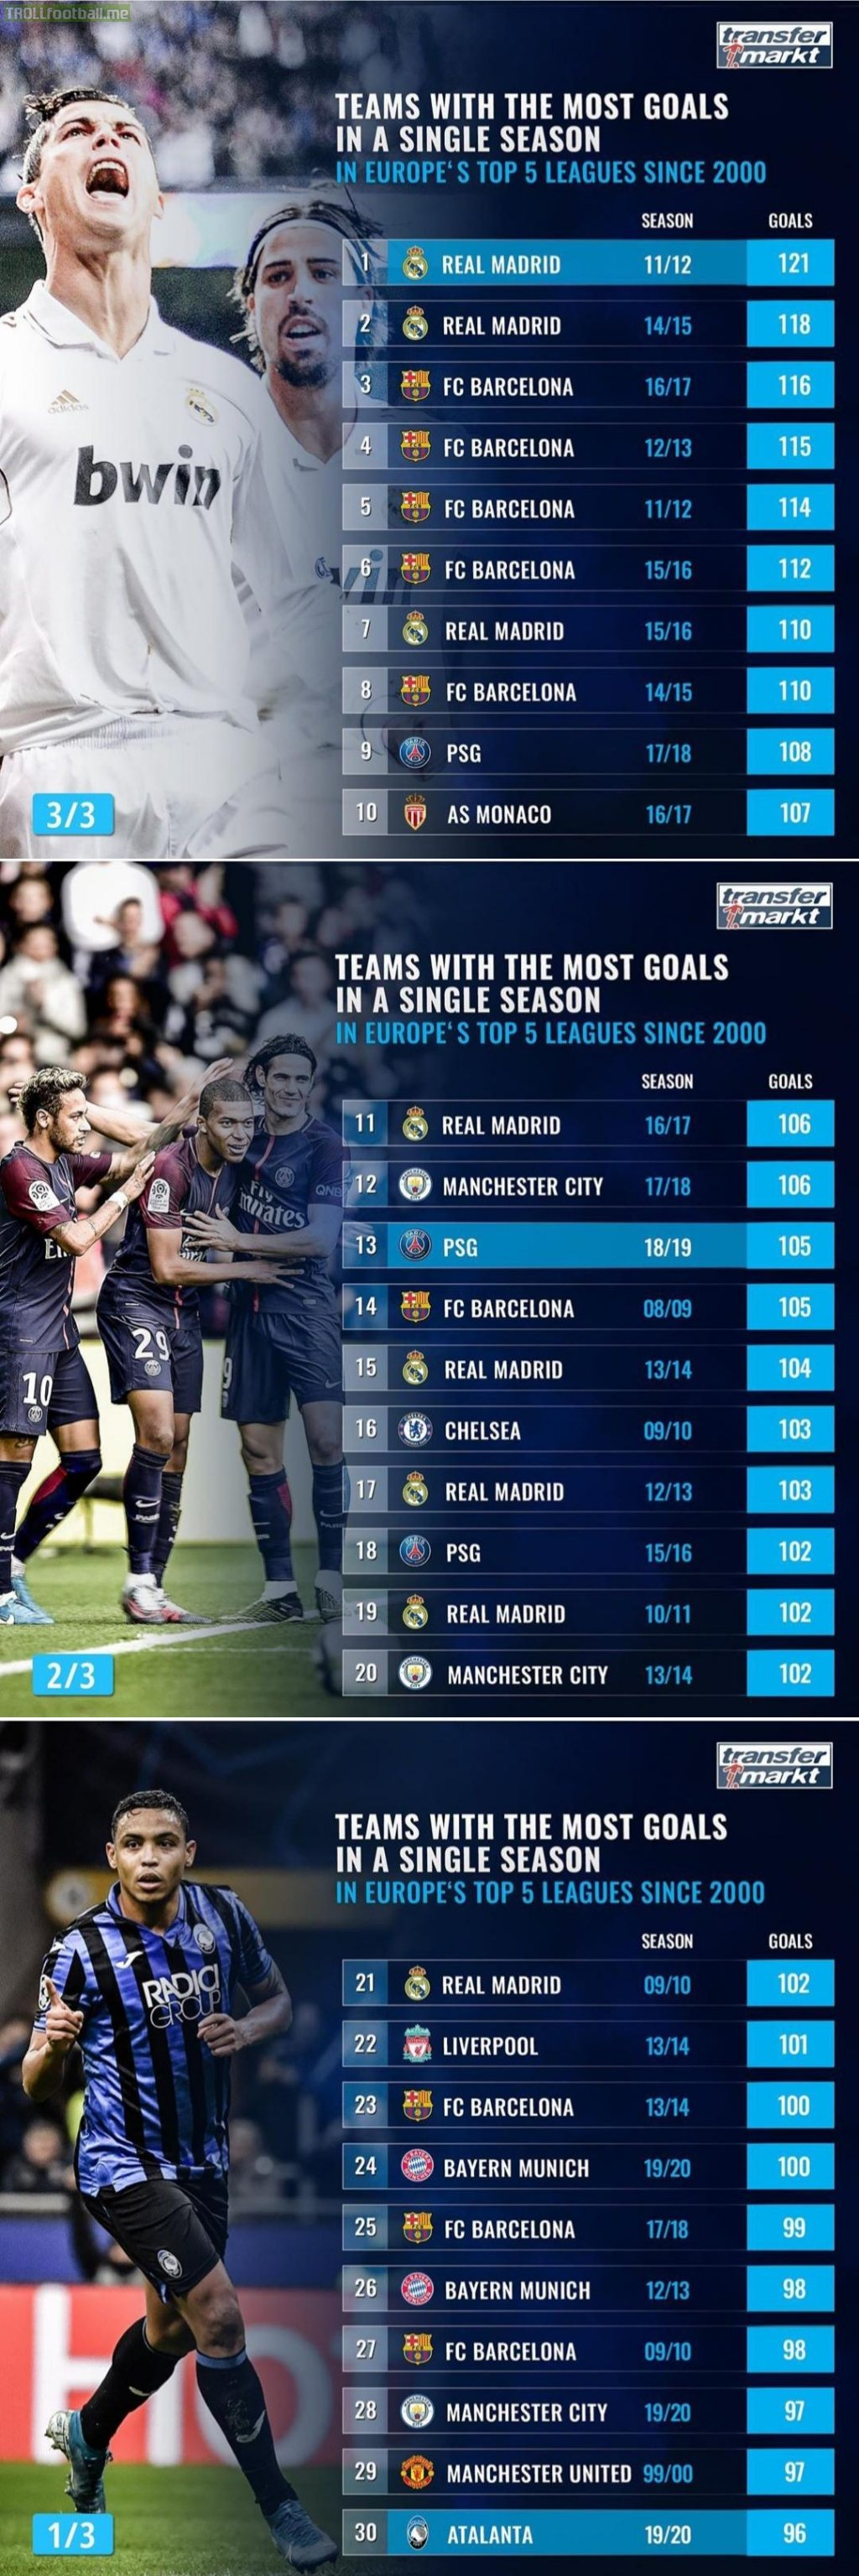 Teams with the most goals in a single season in Europe's top 5 leagues since 2000.